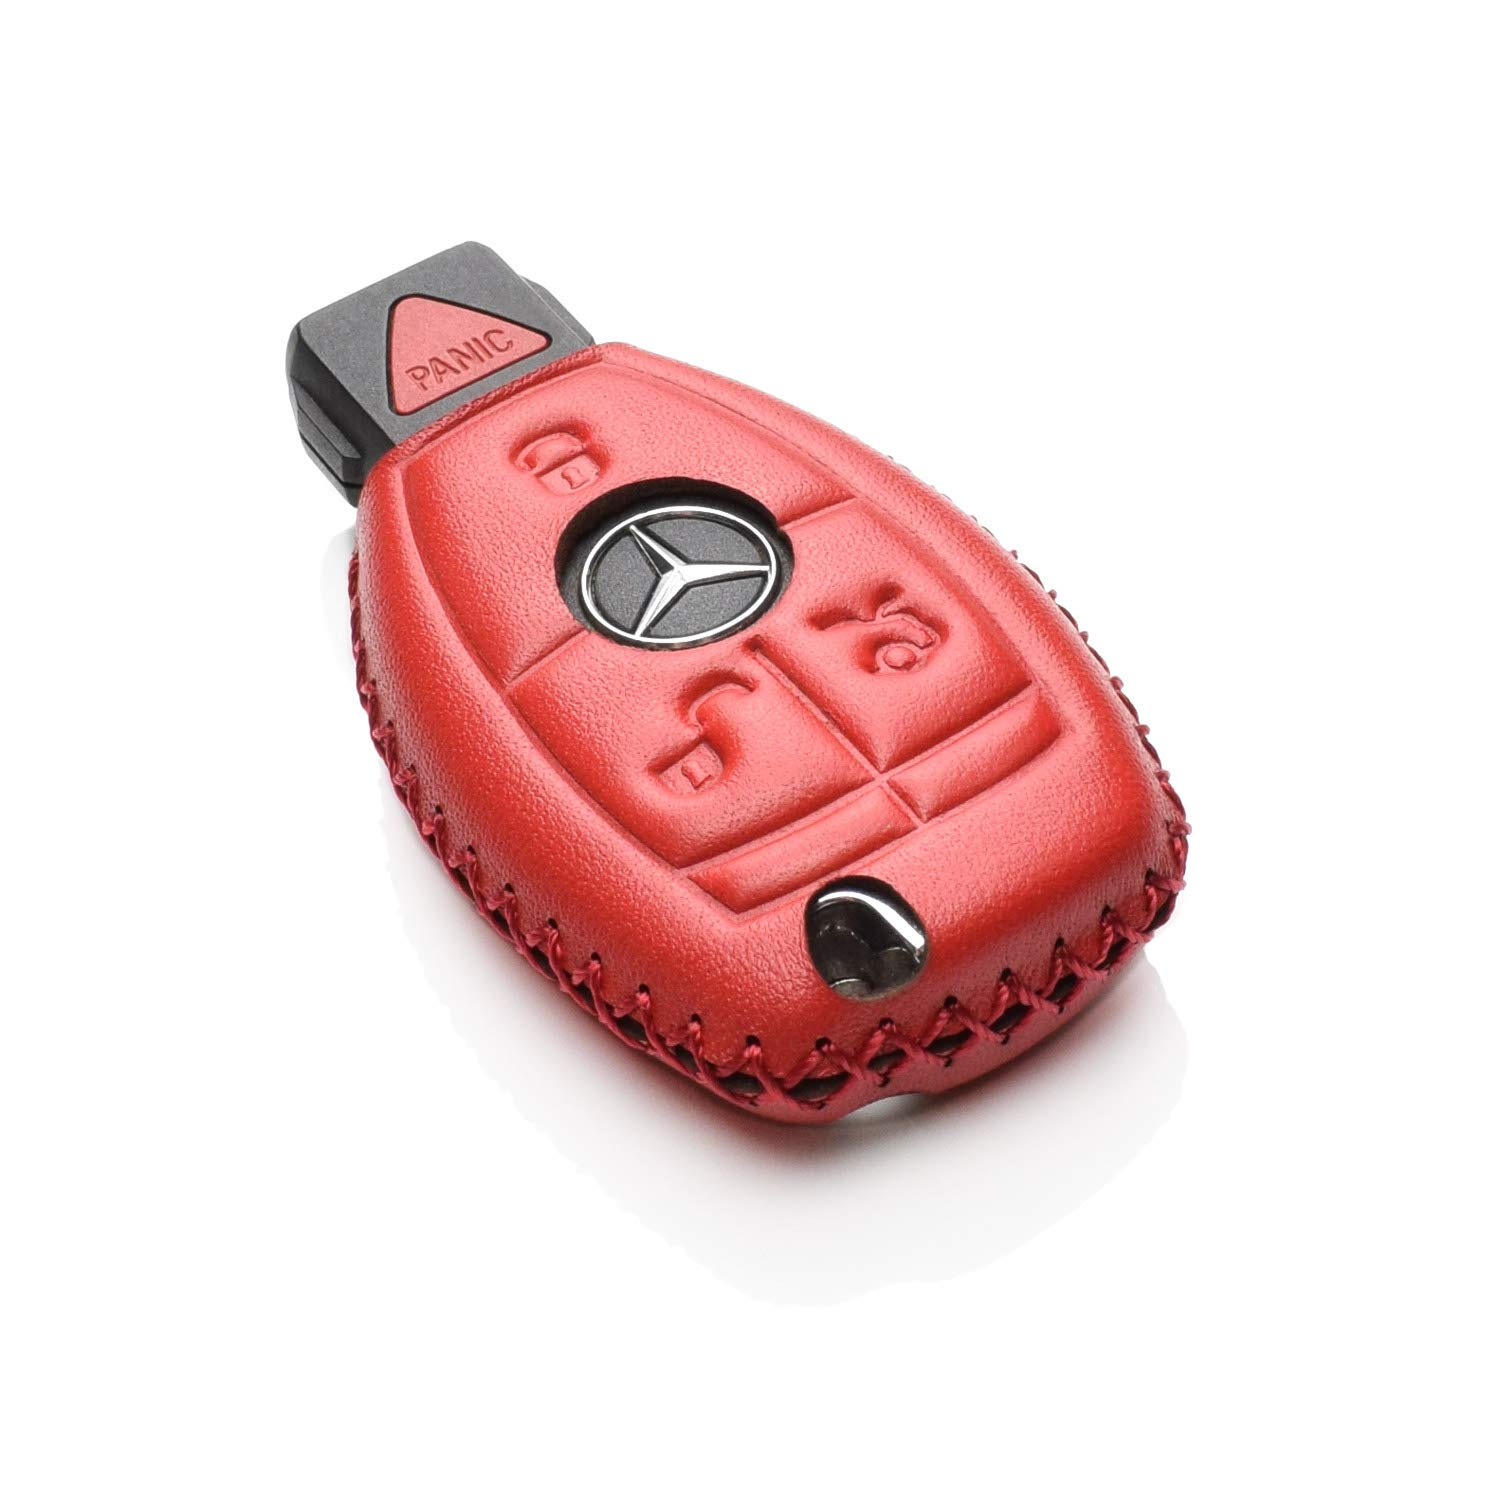 Vitodeco Leather Keyless Entry Remote Control Smart Key Case Cover with a Key Chain for Mercedes Benz Black//Red